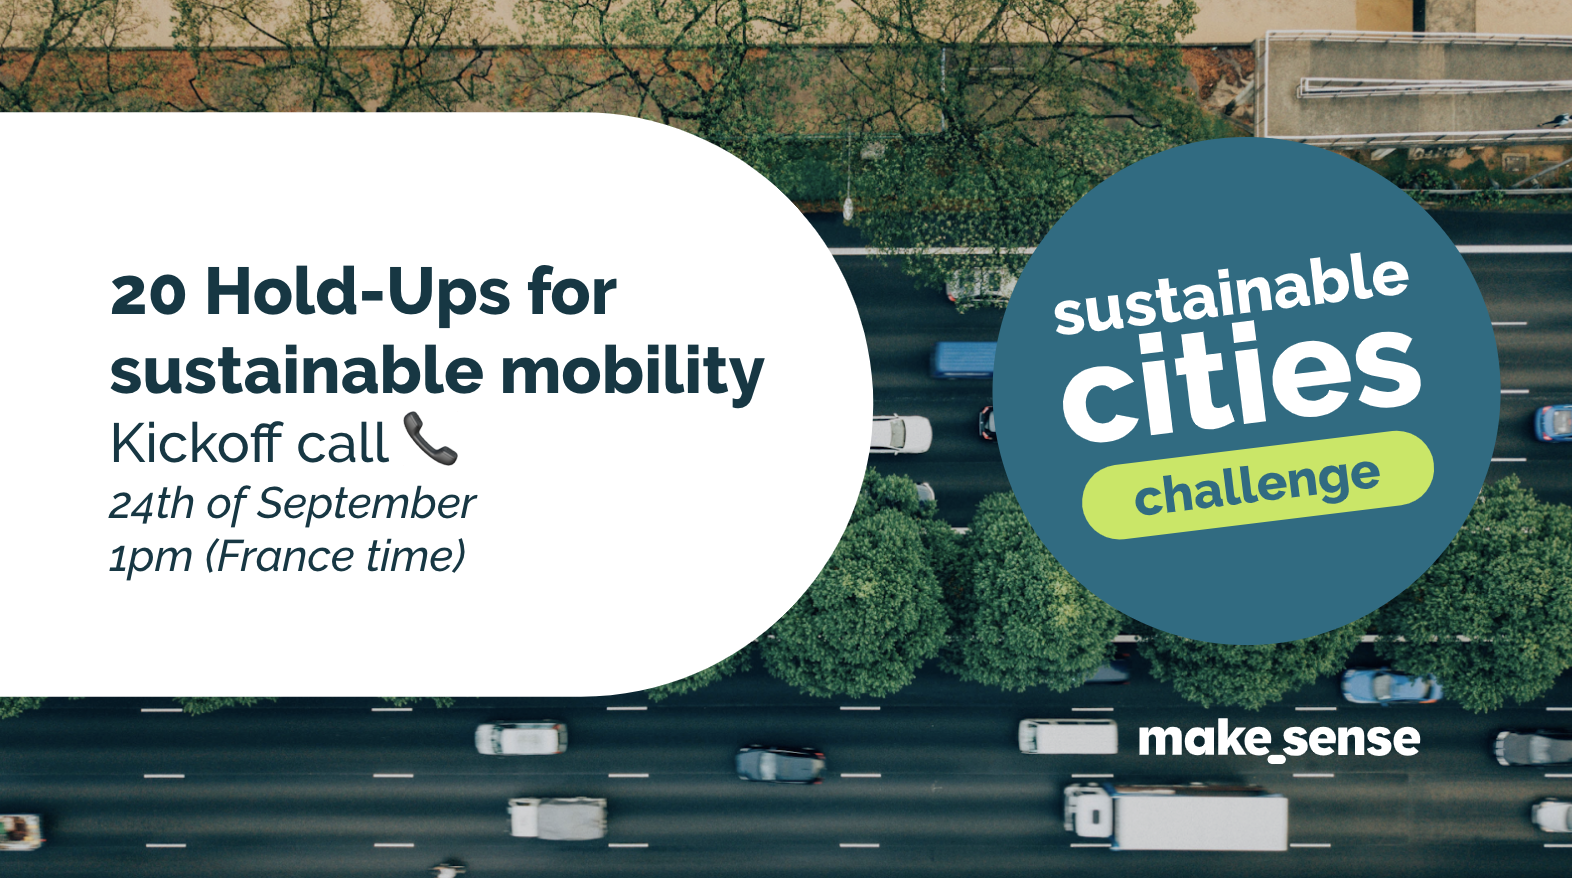 Image of the event : Sustainable Cities Challenge - Hold-Ups 💡 Kickoff call (option 1)